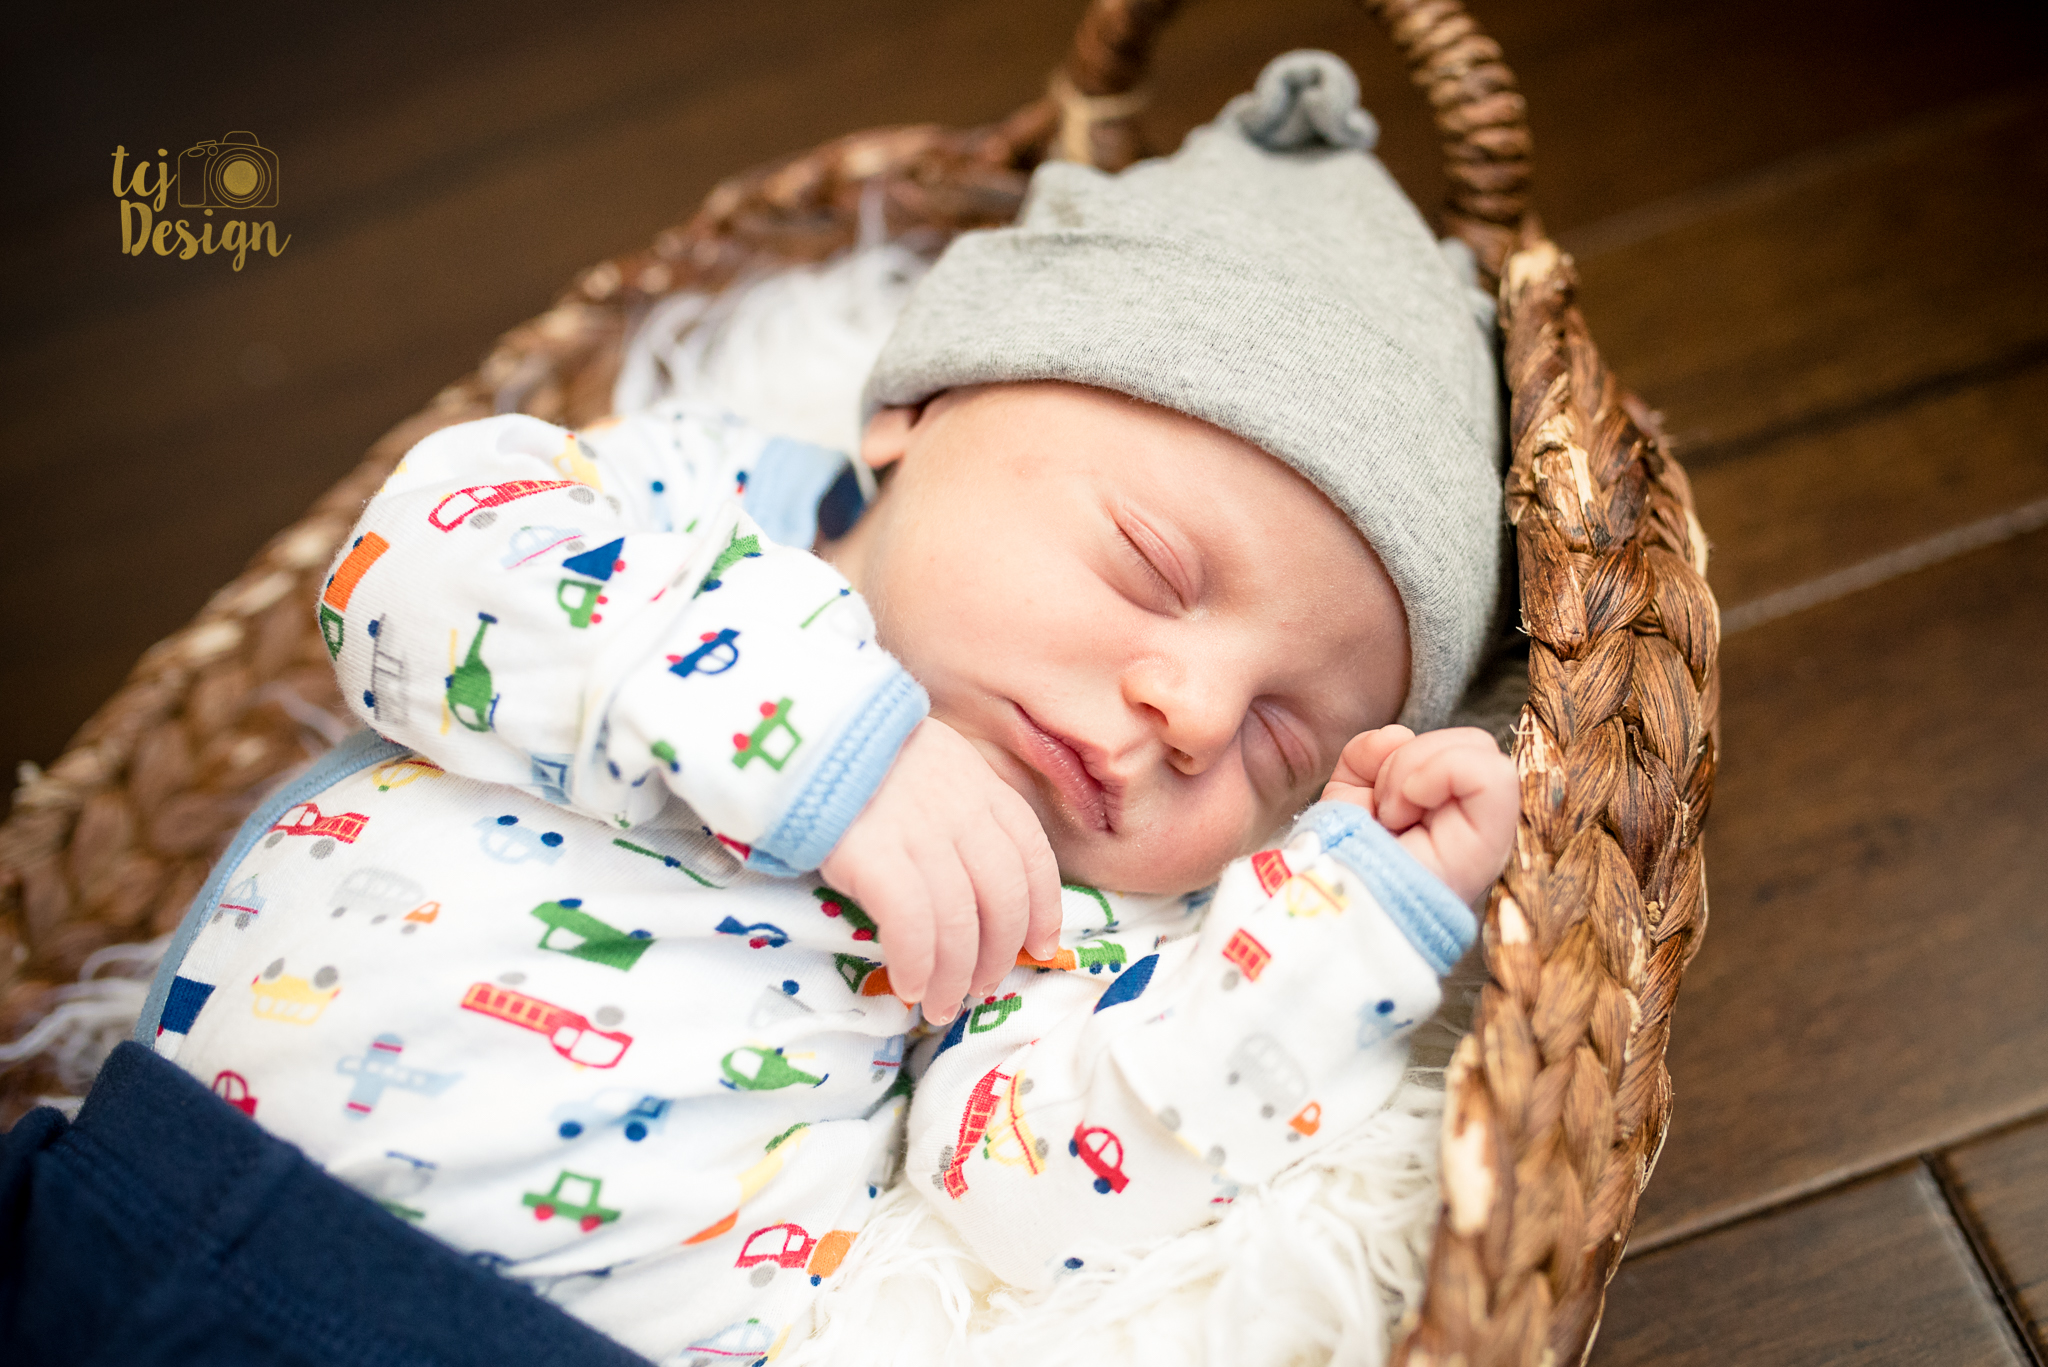 Baby Colby Lifestyle Newborn Session | Chesapeake Beach, Maryland